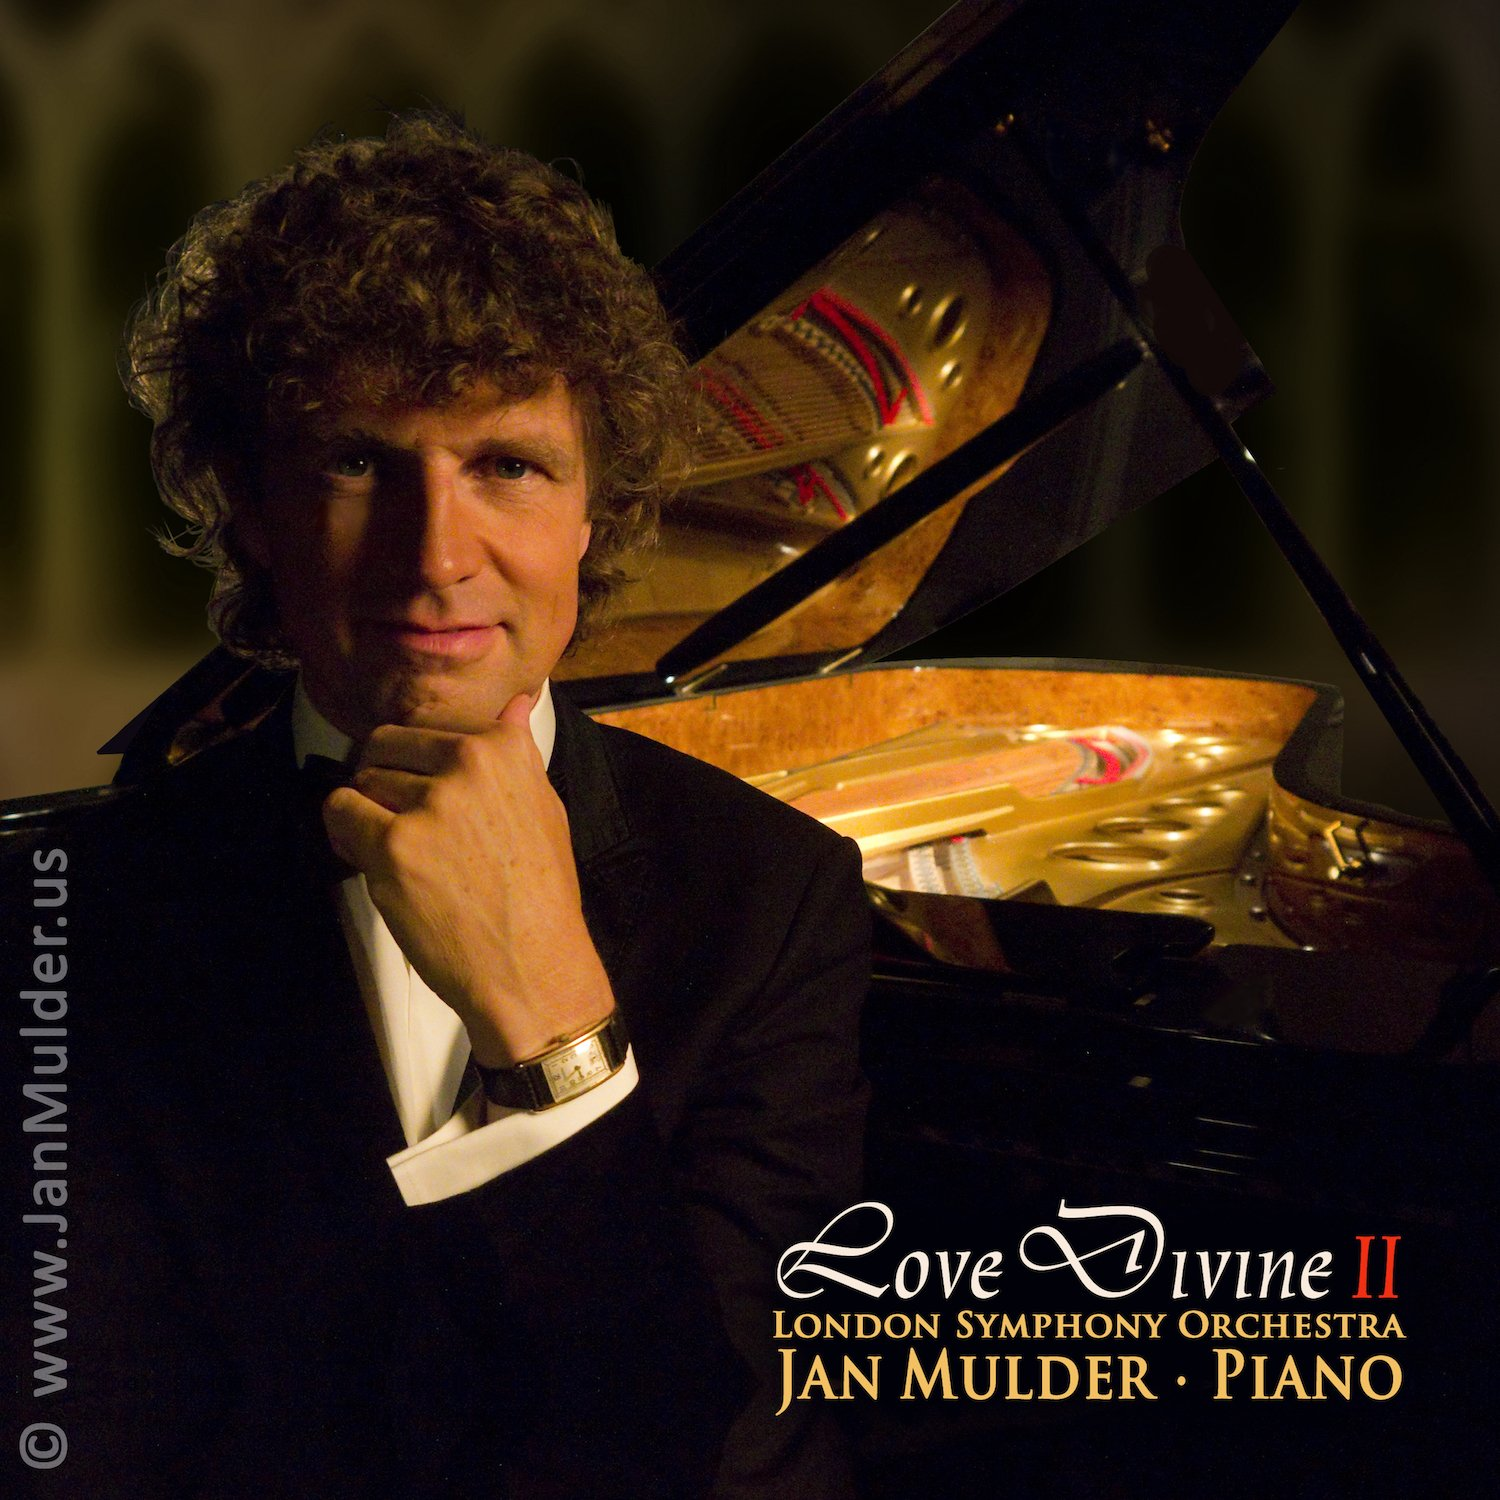 Love Divine 2: inspirational sacred album by pianist Mulder & London Symphony Orchestra (When peace like a river, The Lord's Prayer, Spirit of Love)